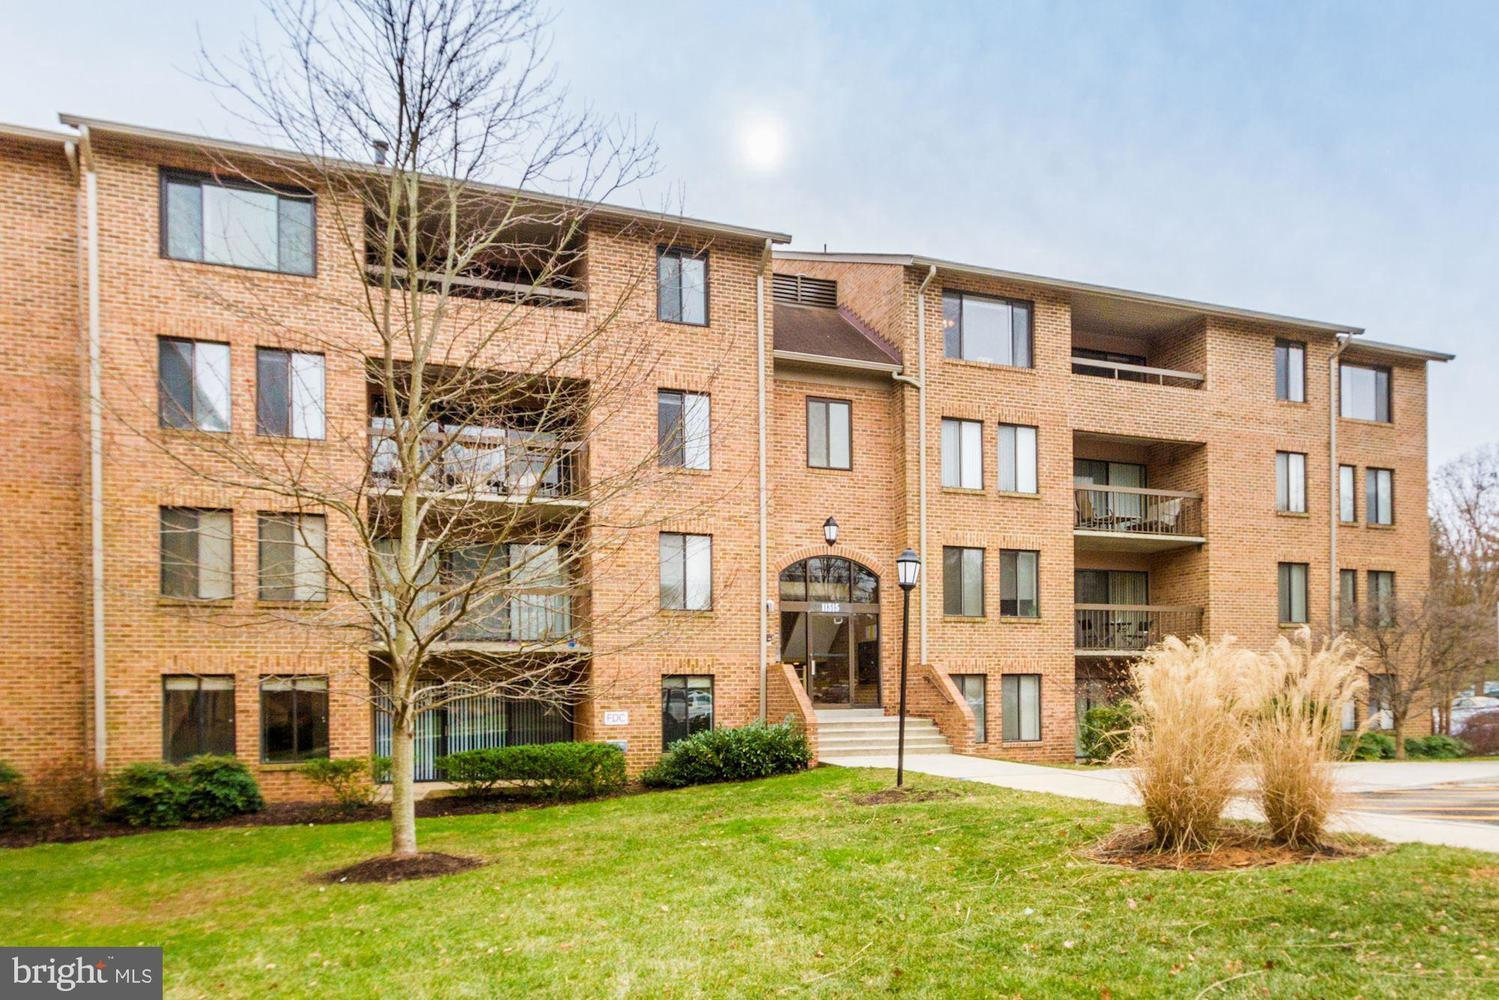 11315 Commonwealth Drive, Unit 304 Rockville, MD 20852